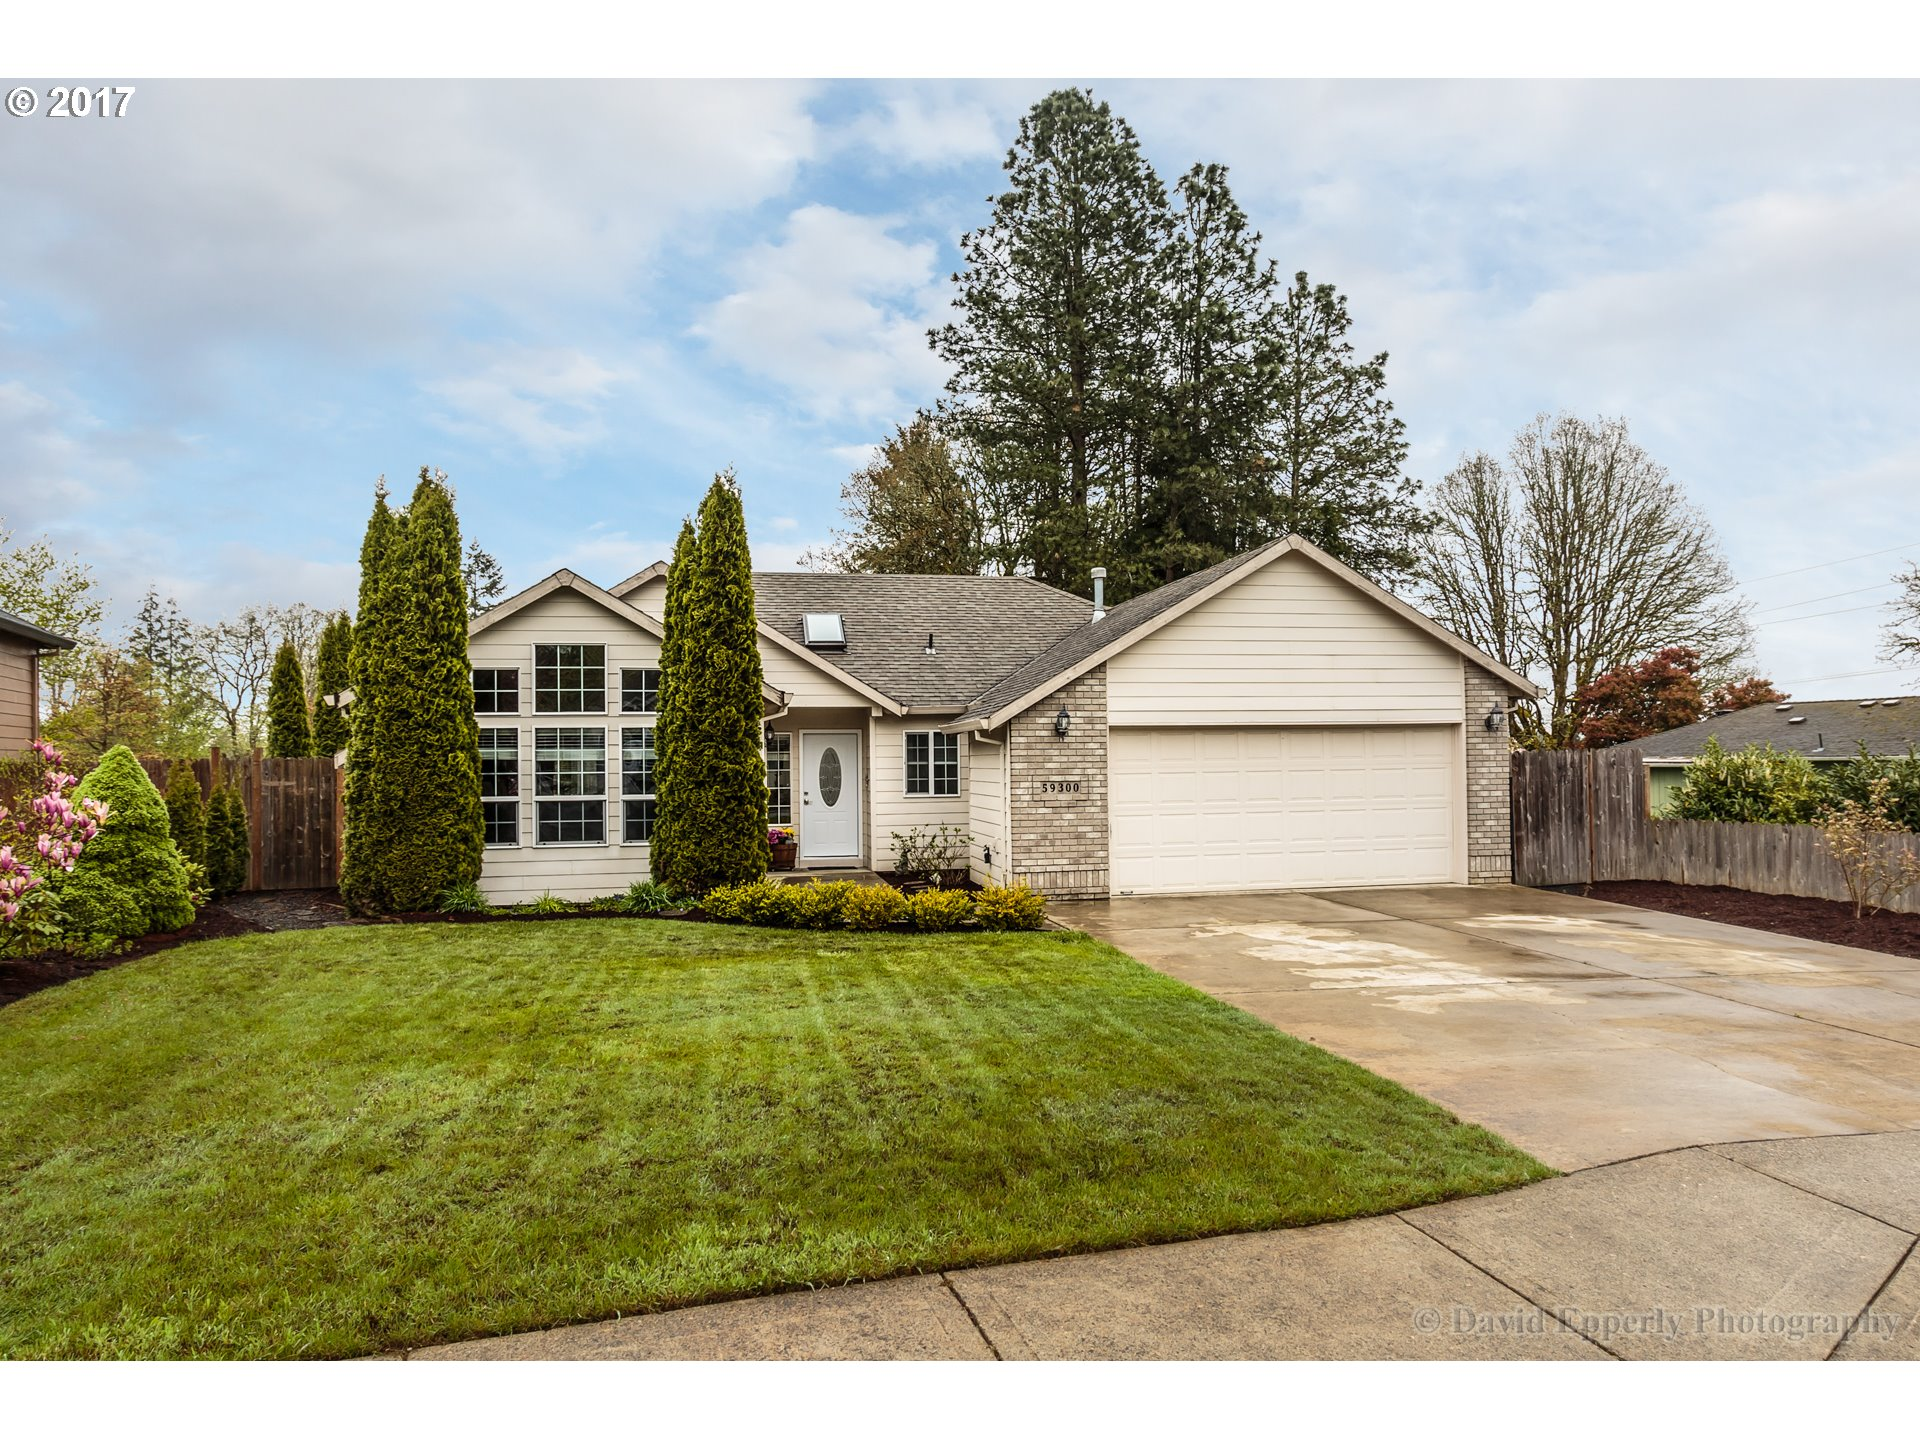 59300 MOUNTAIN VIEW DR, St. Helens, OR 97051